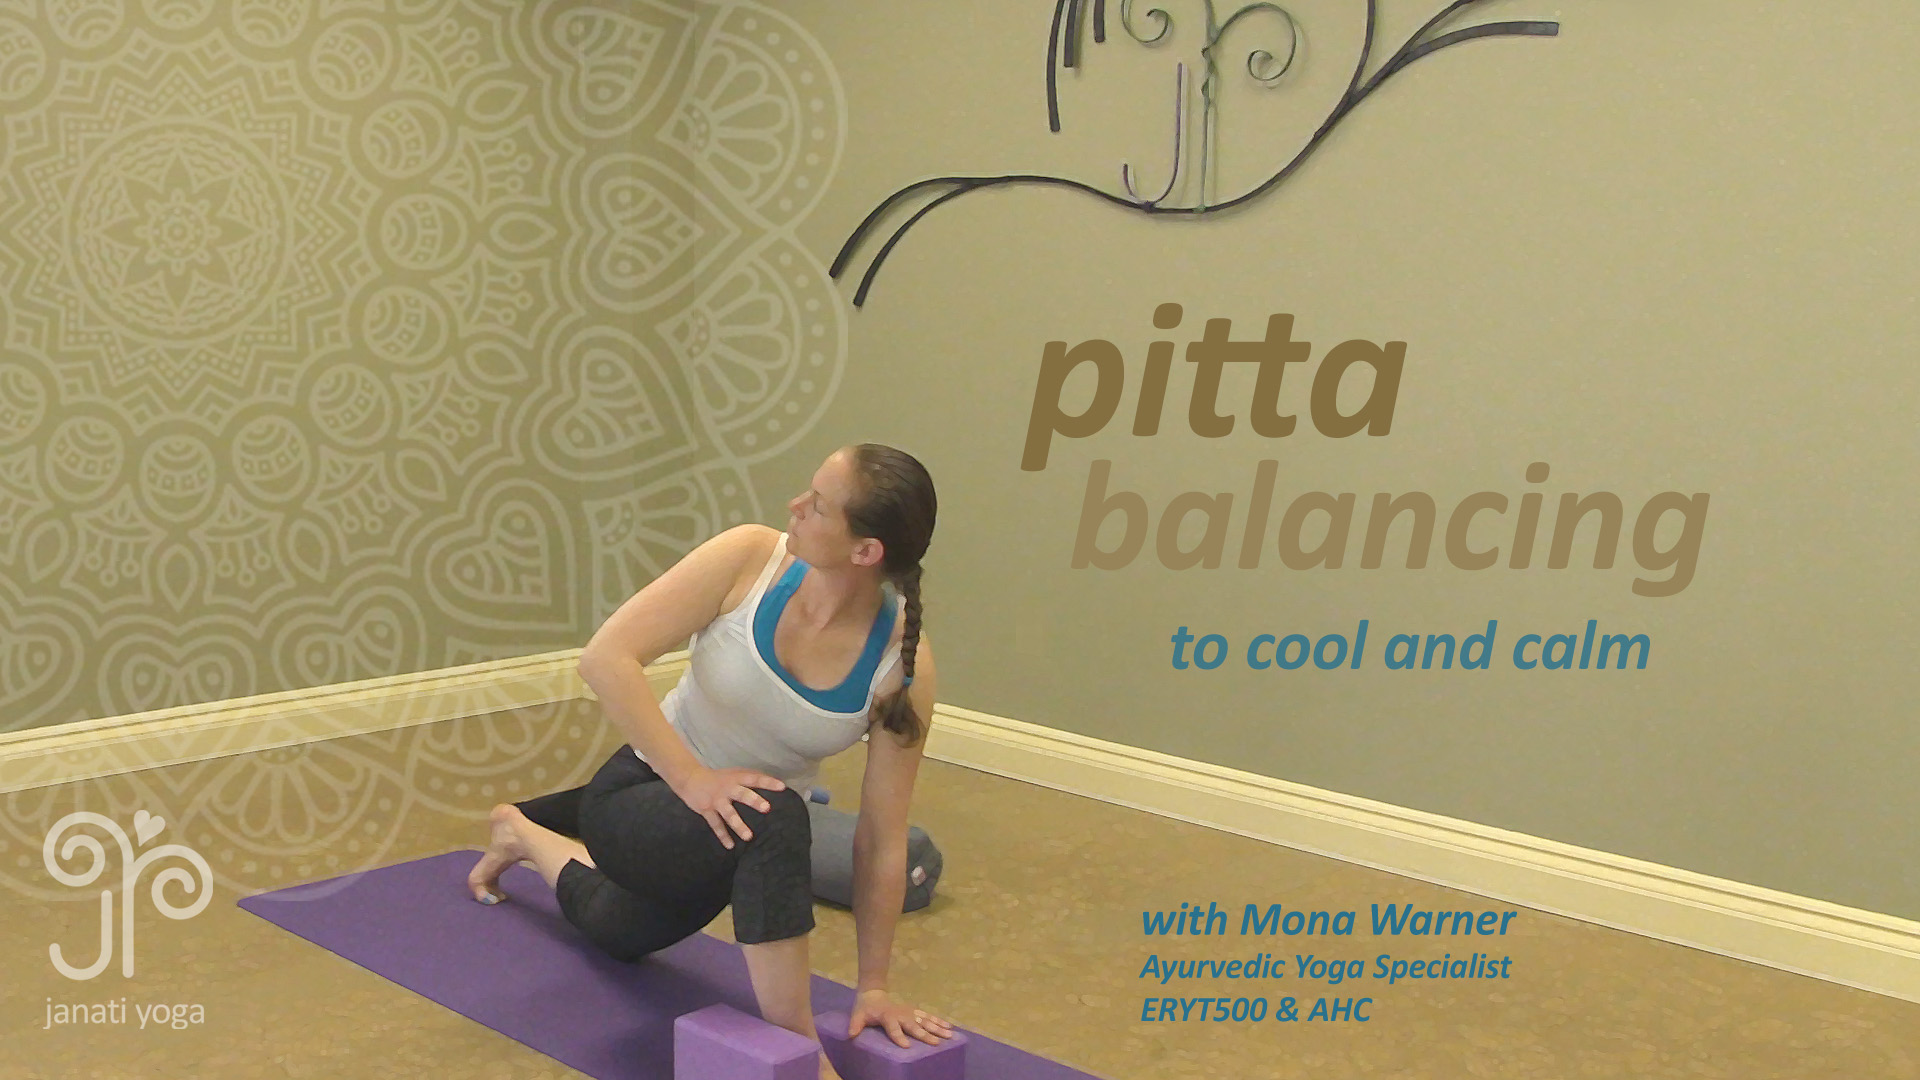 pitta video lesson yoga practice